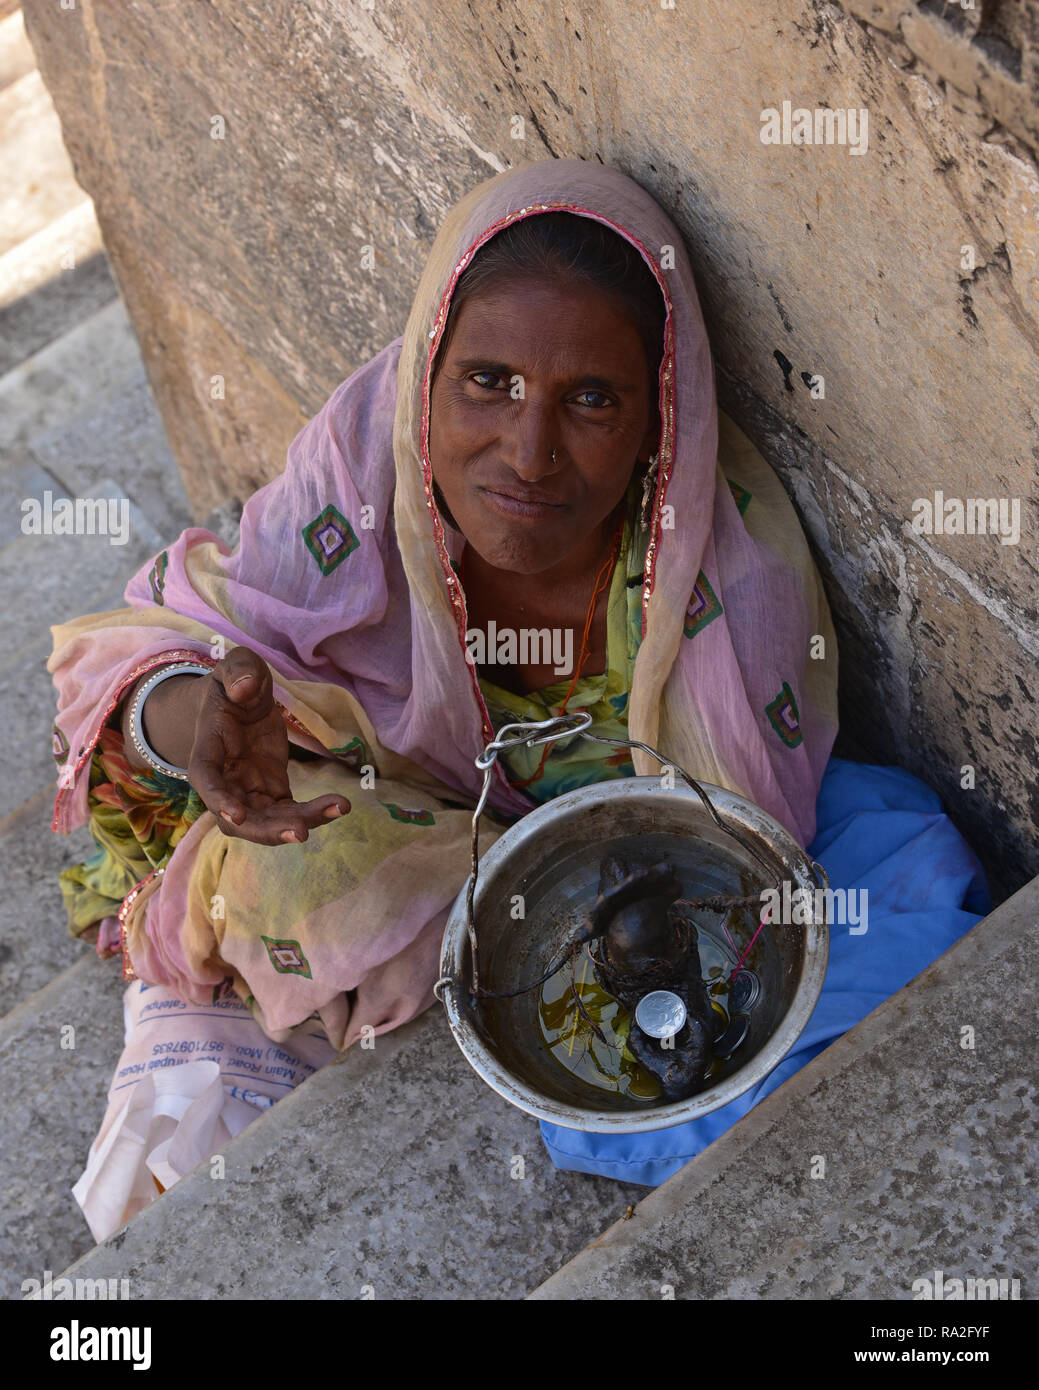 Poverty-stricken Asian female begging for money on the streets of Udaipur, Rajasthan, Western India, Asia. - Stock Image